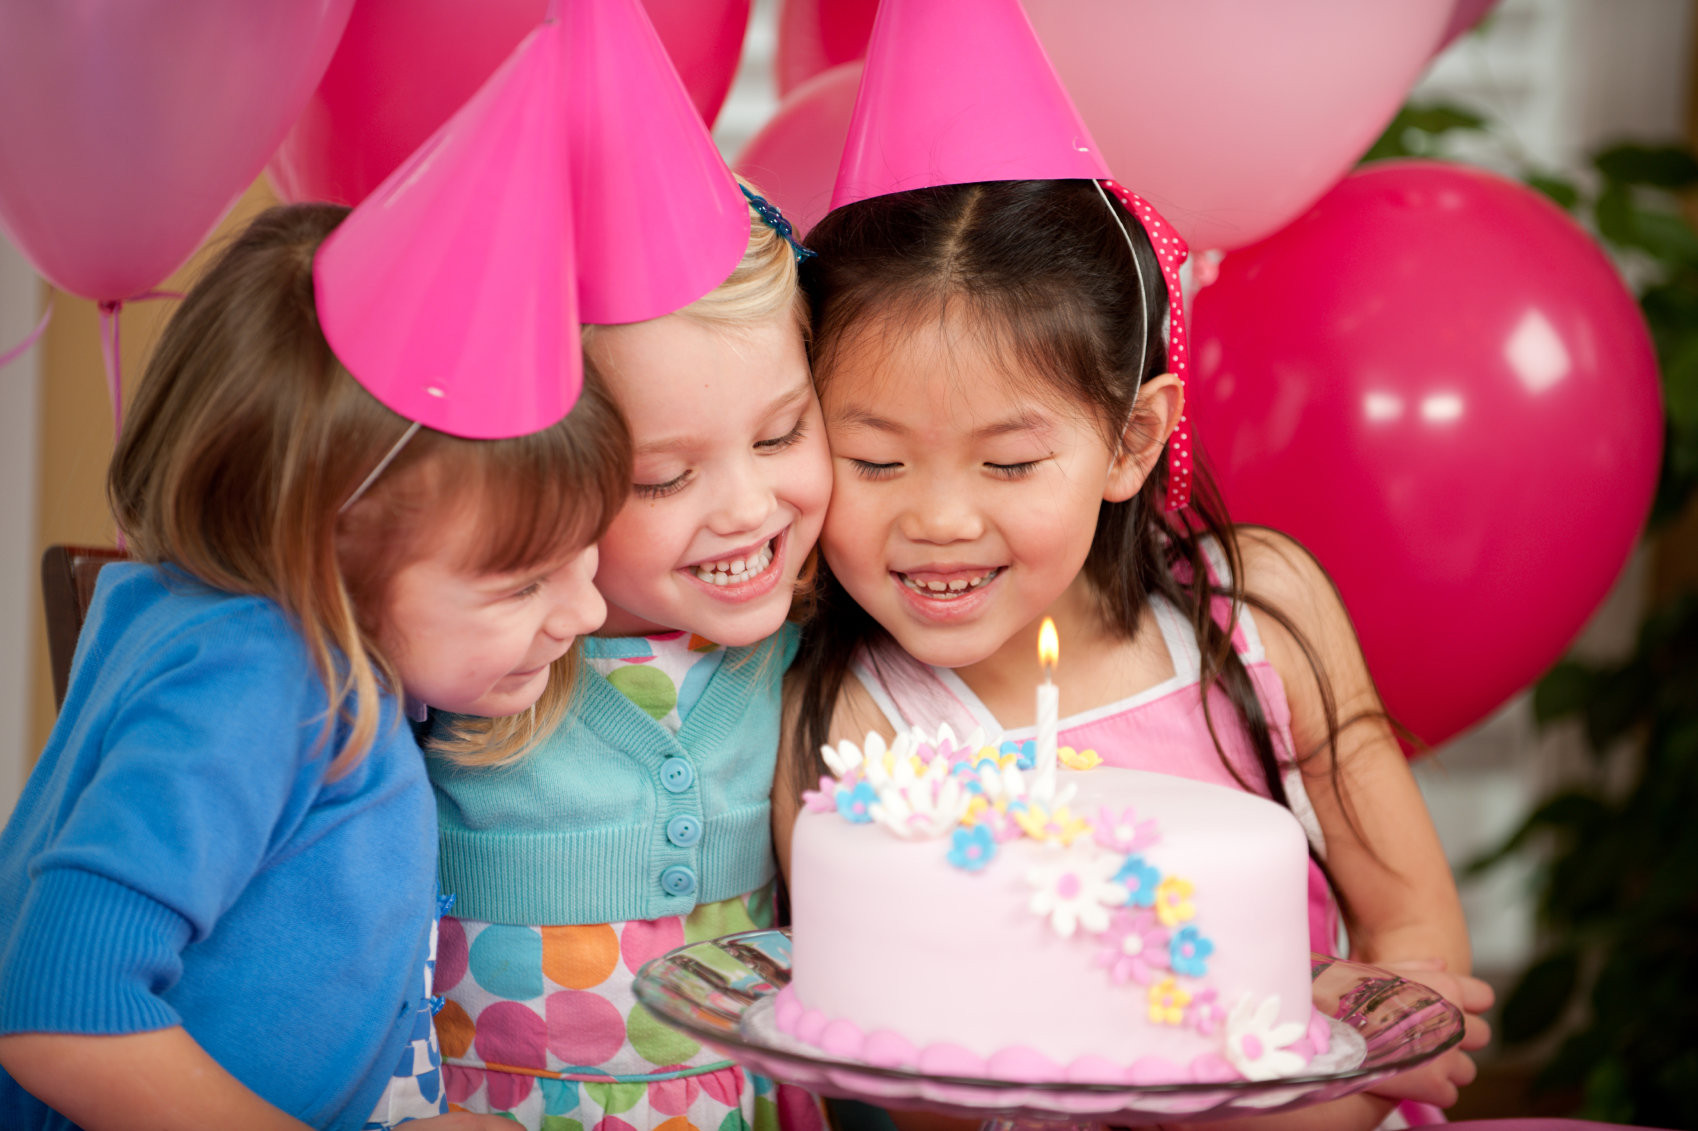 Best ideas about Kids Birthday Party . Save or Pin 8 Fun Ideas to Make Your Kid s Birthday Party a Charitable Now.